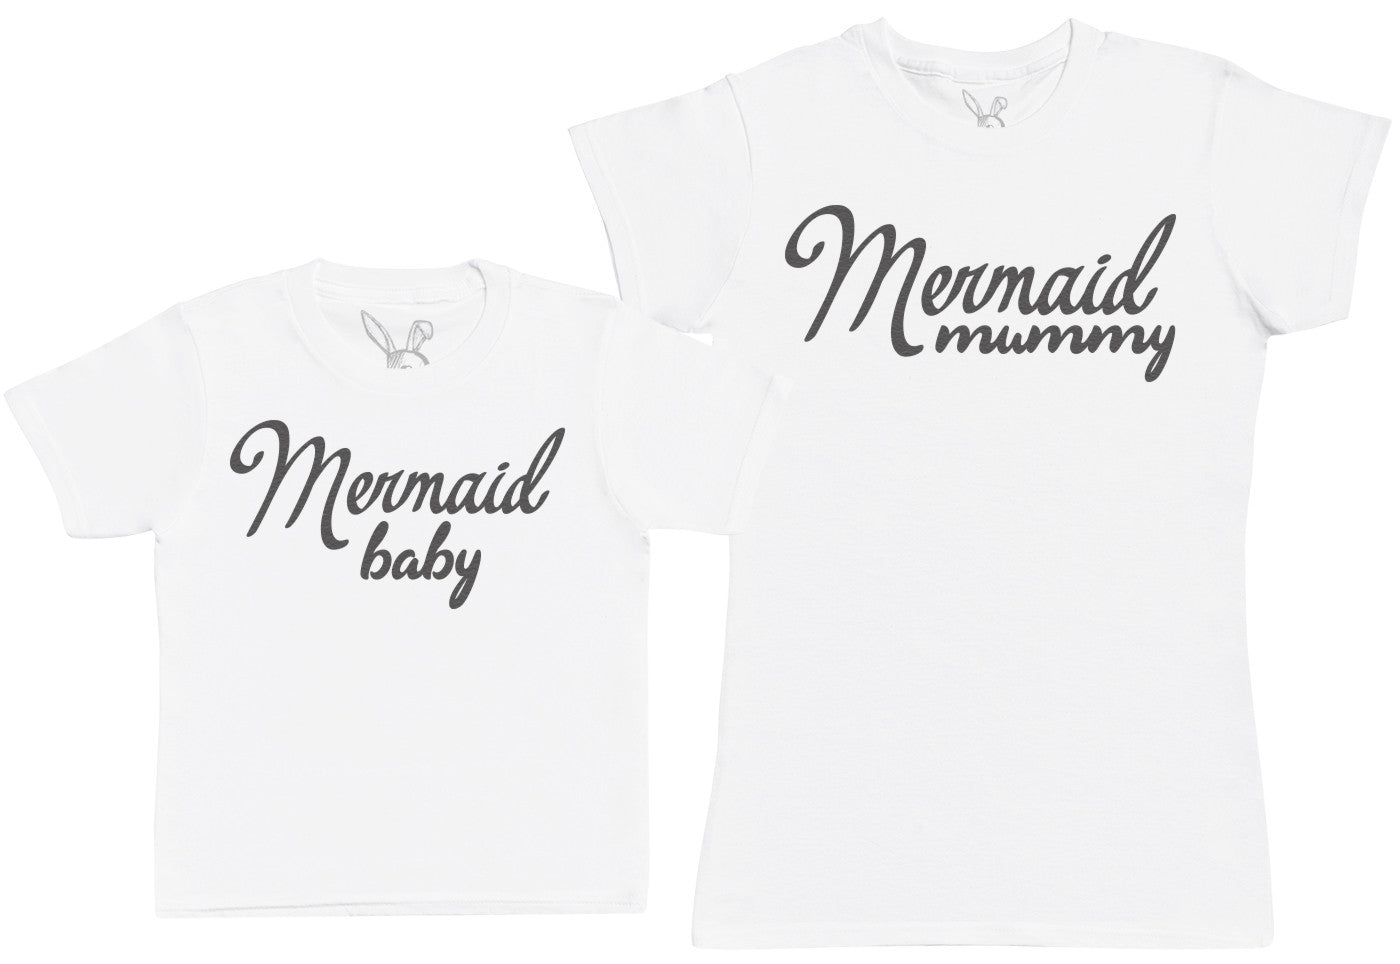 Mermaid Baby - Kid's Gift Set with Kid's T-Shirt & Mother's T-Shirt